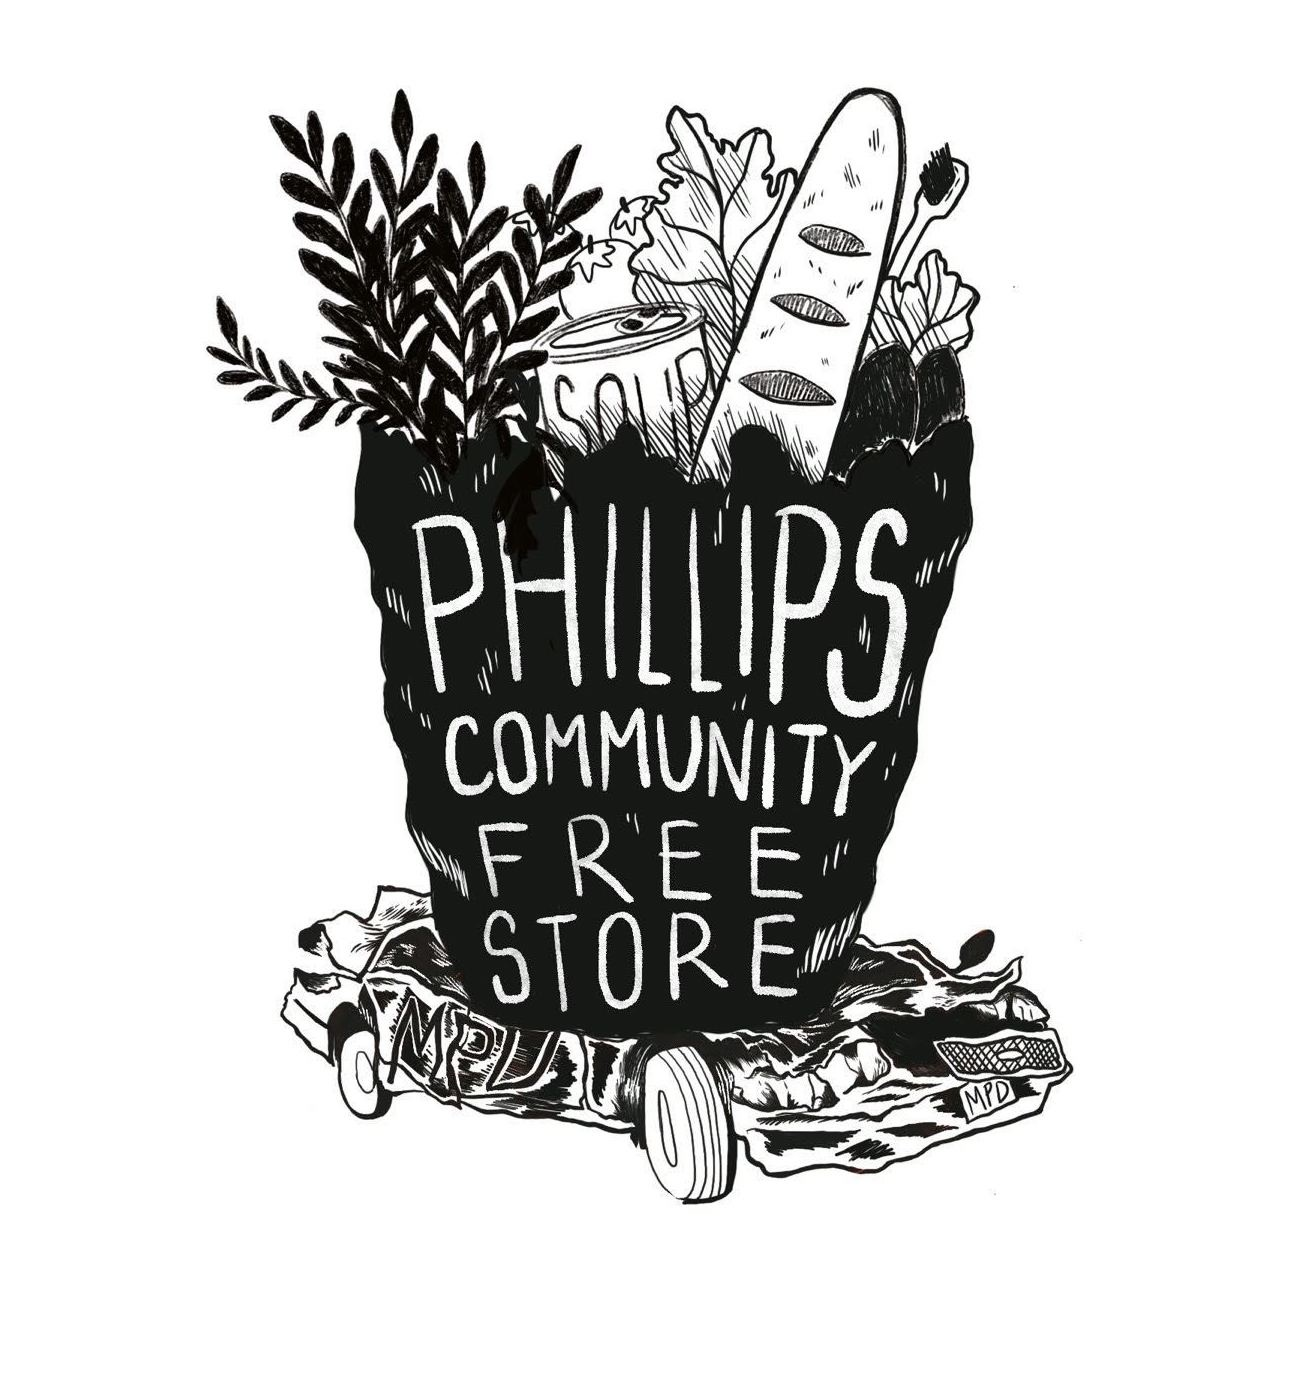 7/30/2021 Foundry Giving Friday: Phillips Community Free Store